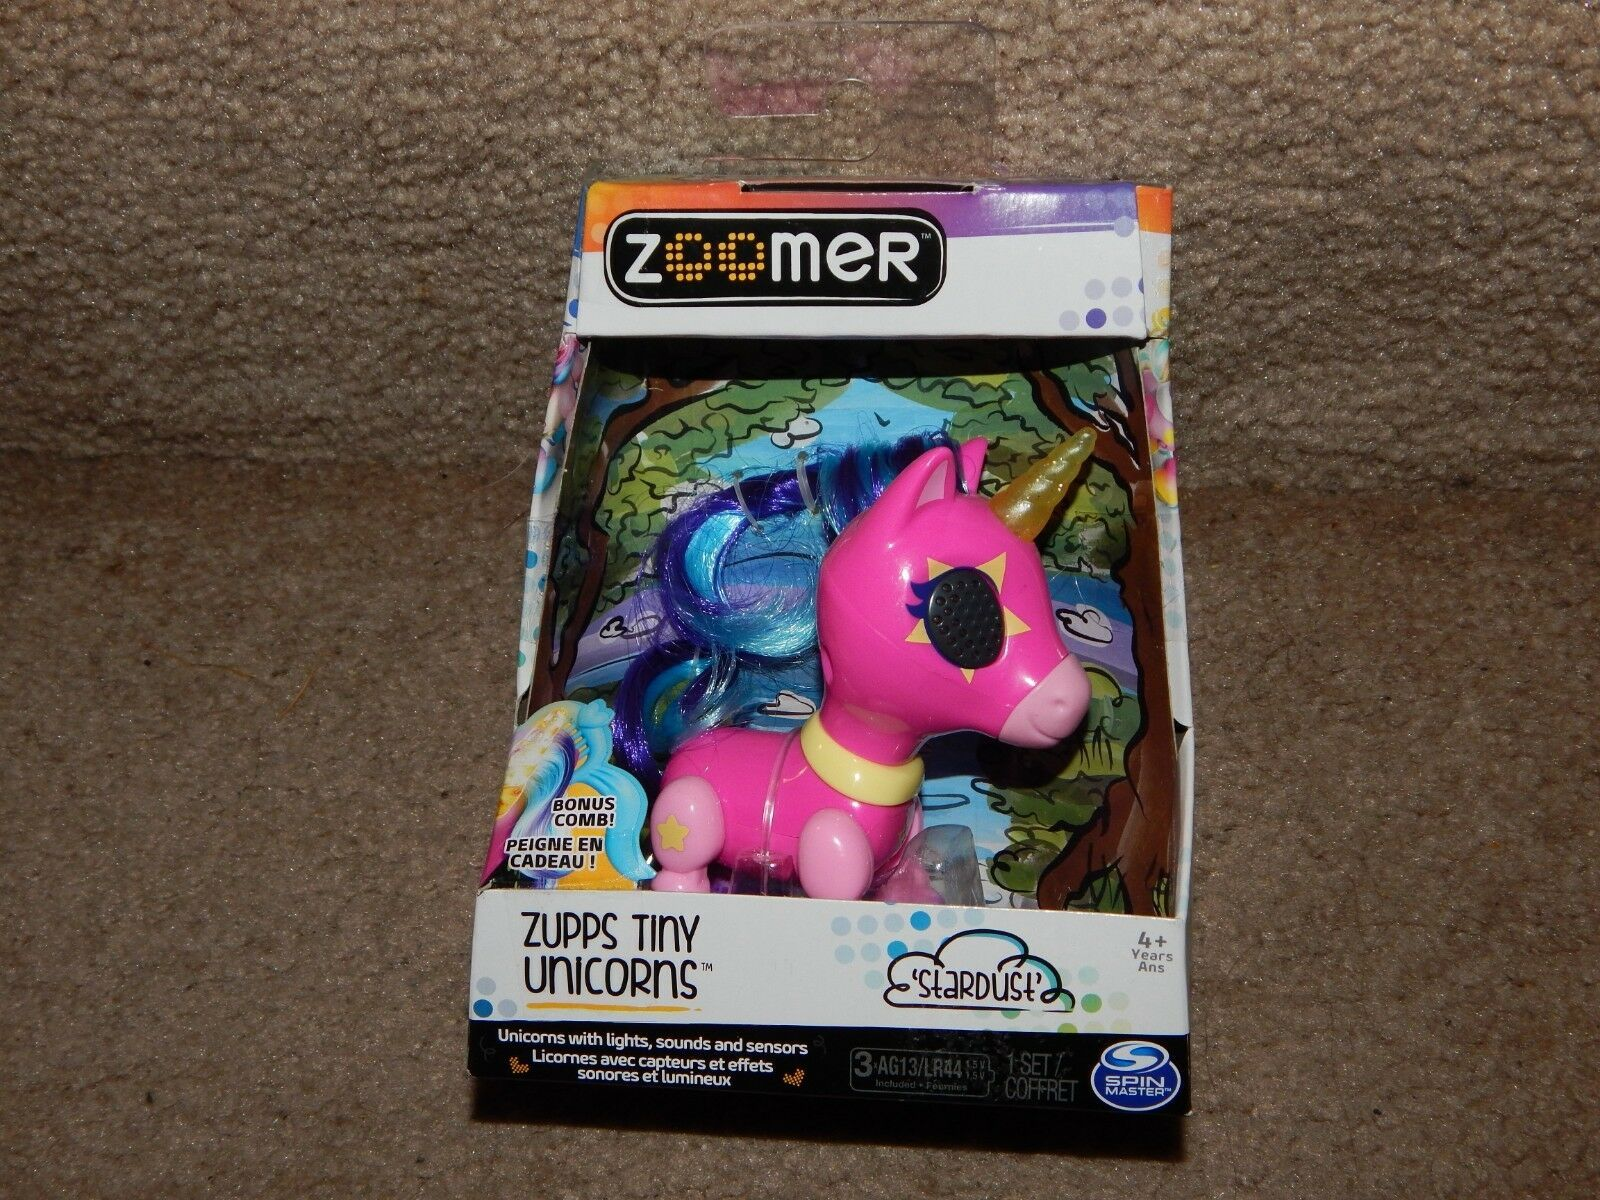 New! Zooner Zupps Tiny Light-Up Horn Unicorns Figure Stardust 4+ Free Shipping